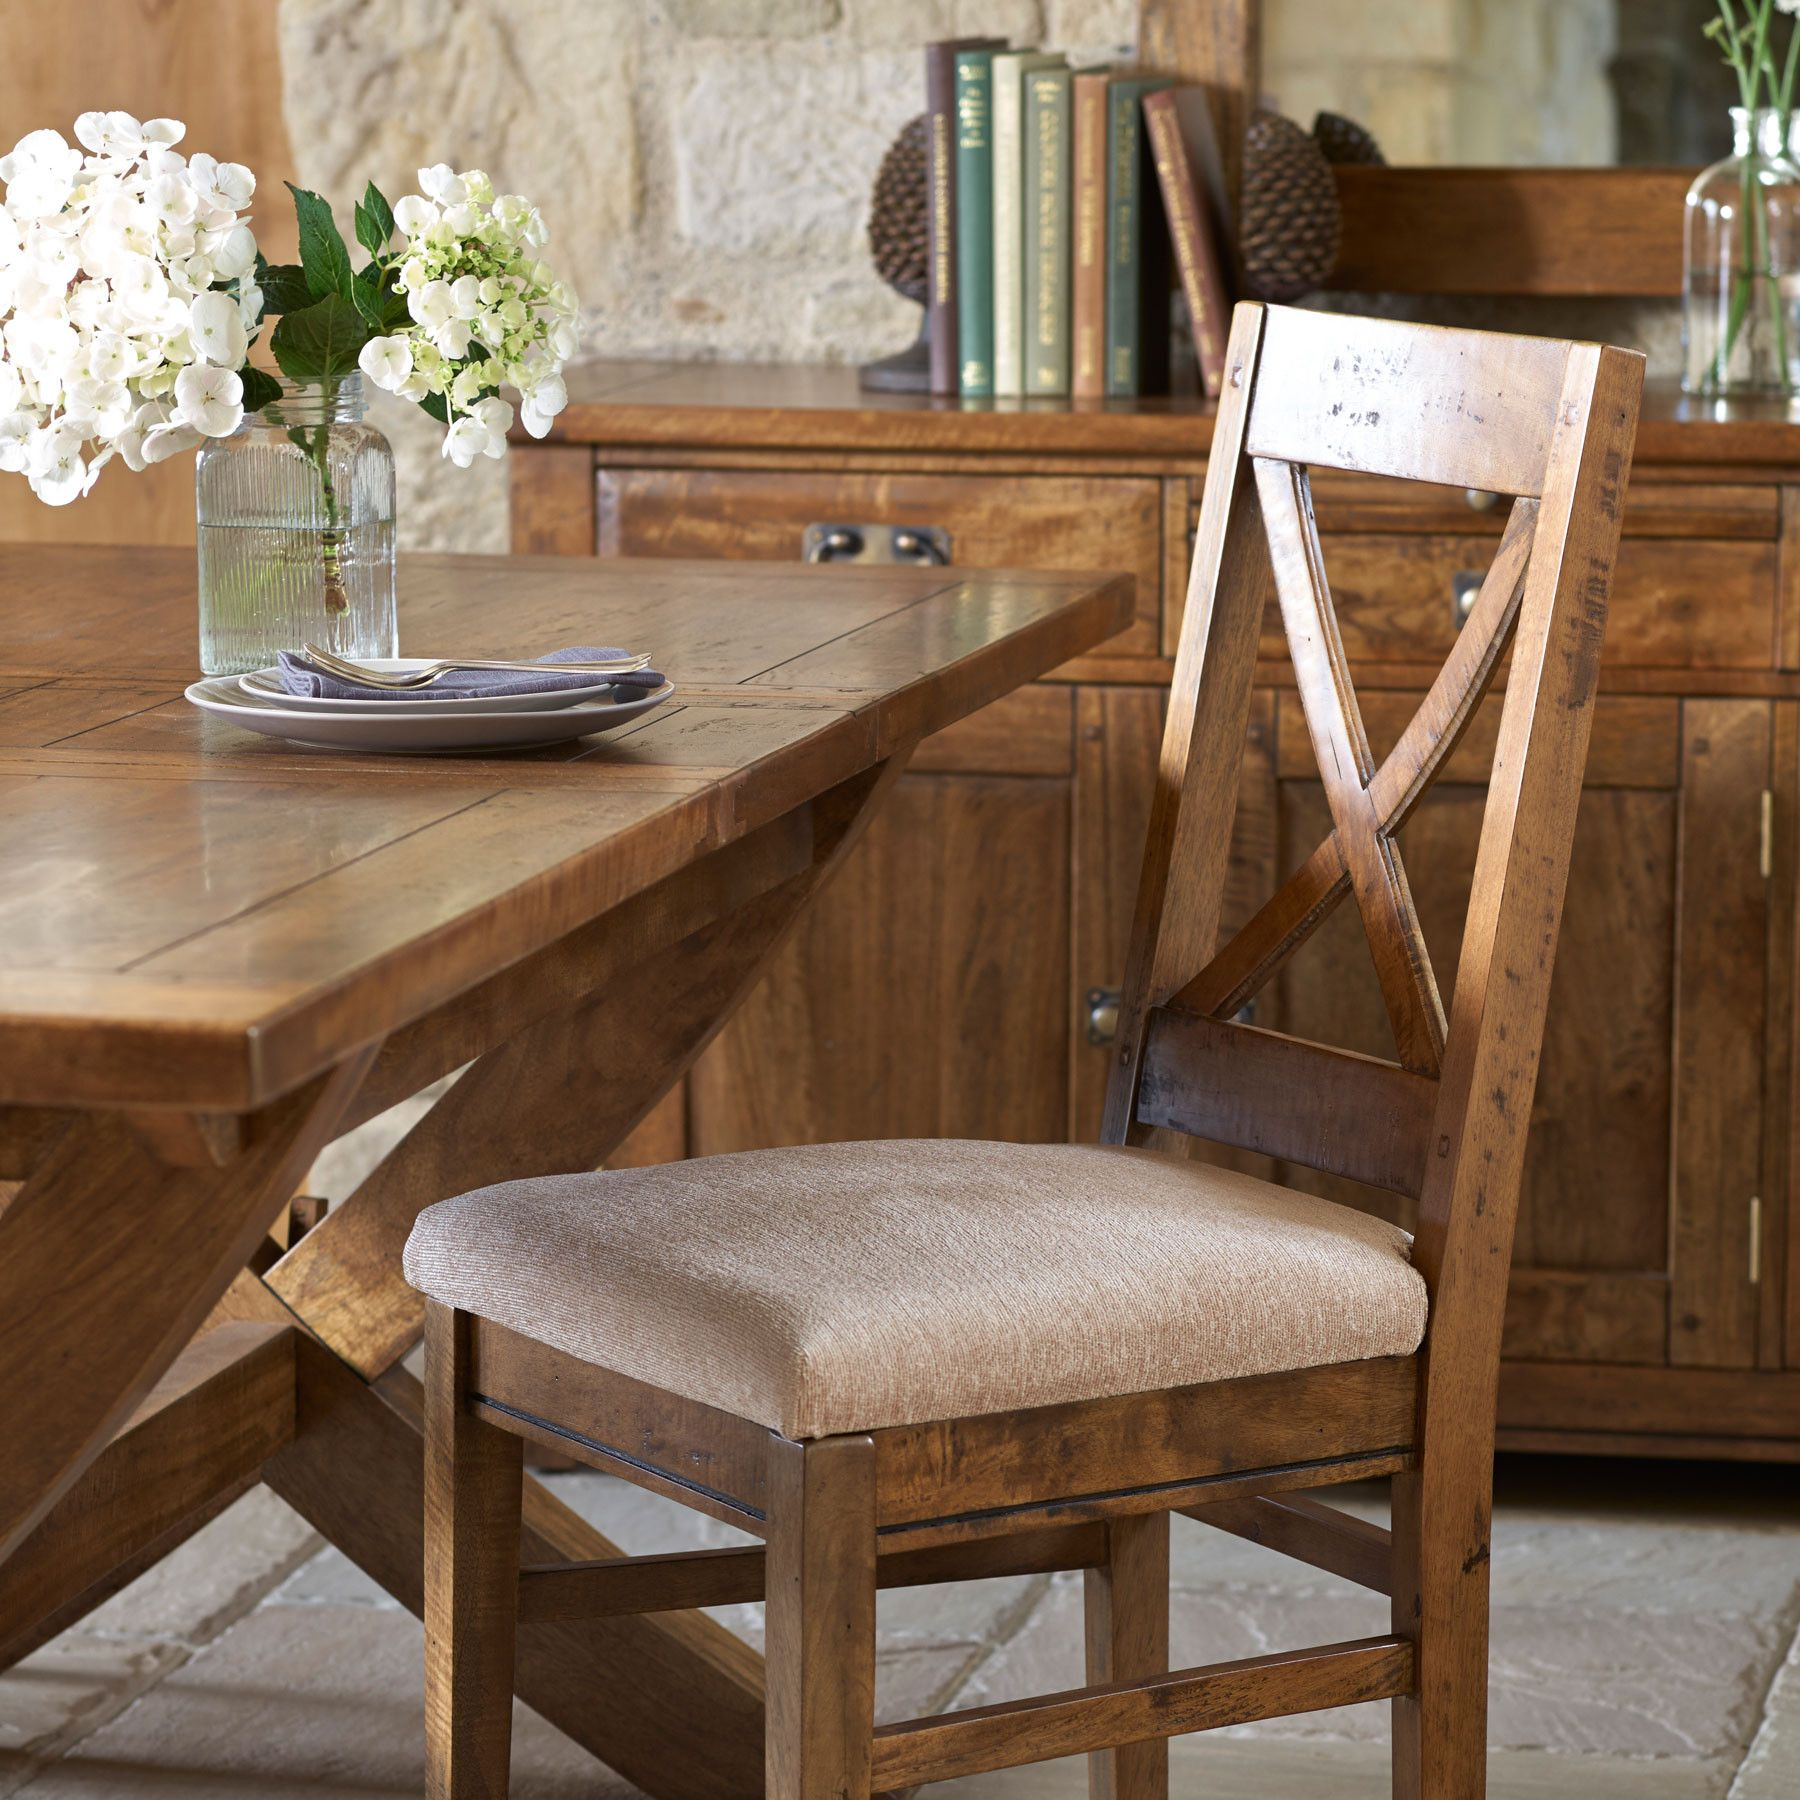 Mango Wood Dining Chairs   Stuhlede.com   Dining chairs, Acrylic ...